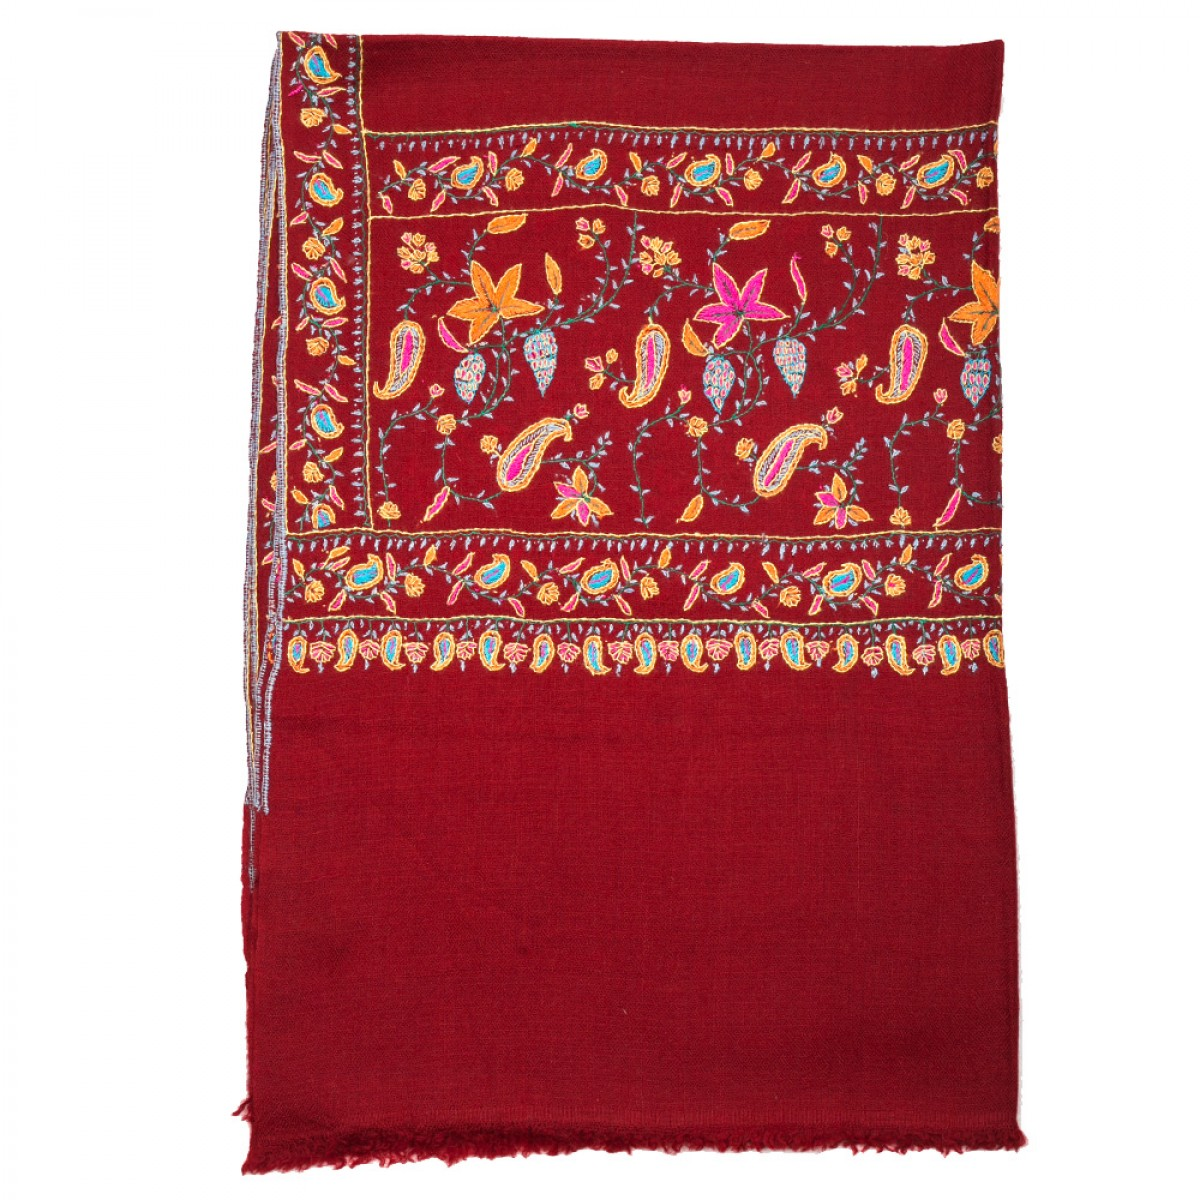 Hand Embroidered Cashmere Pashmina Stole - Red